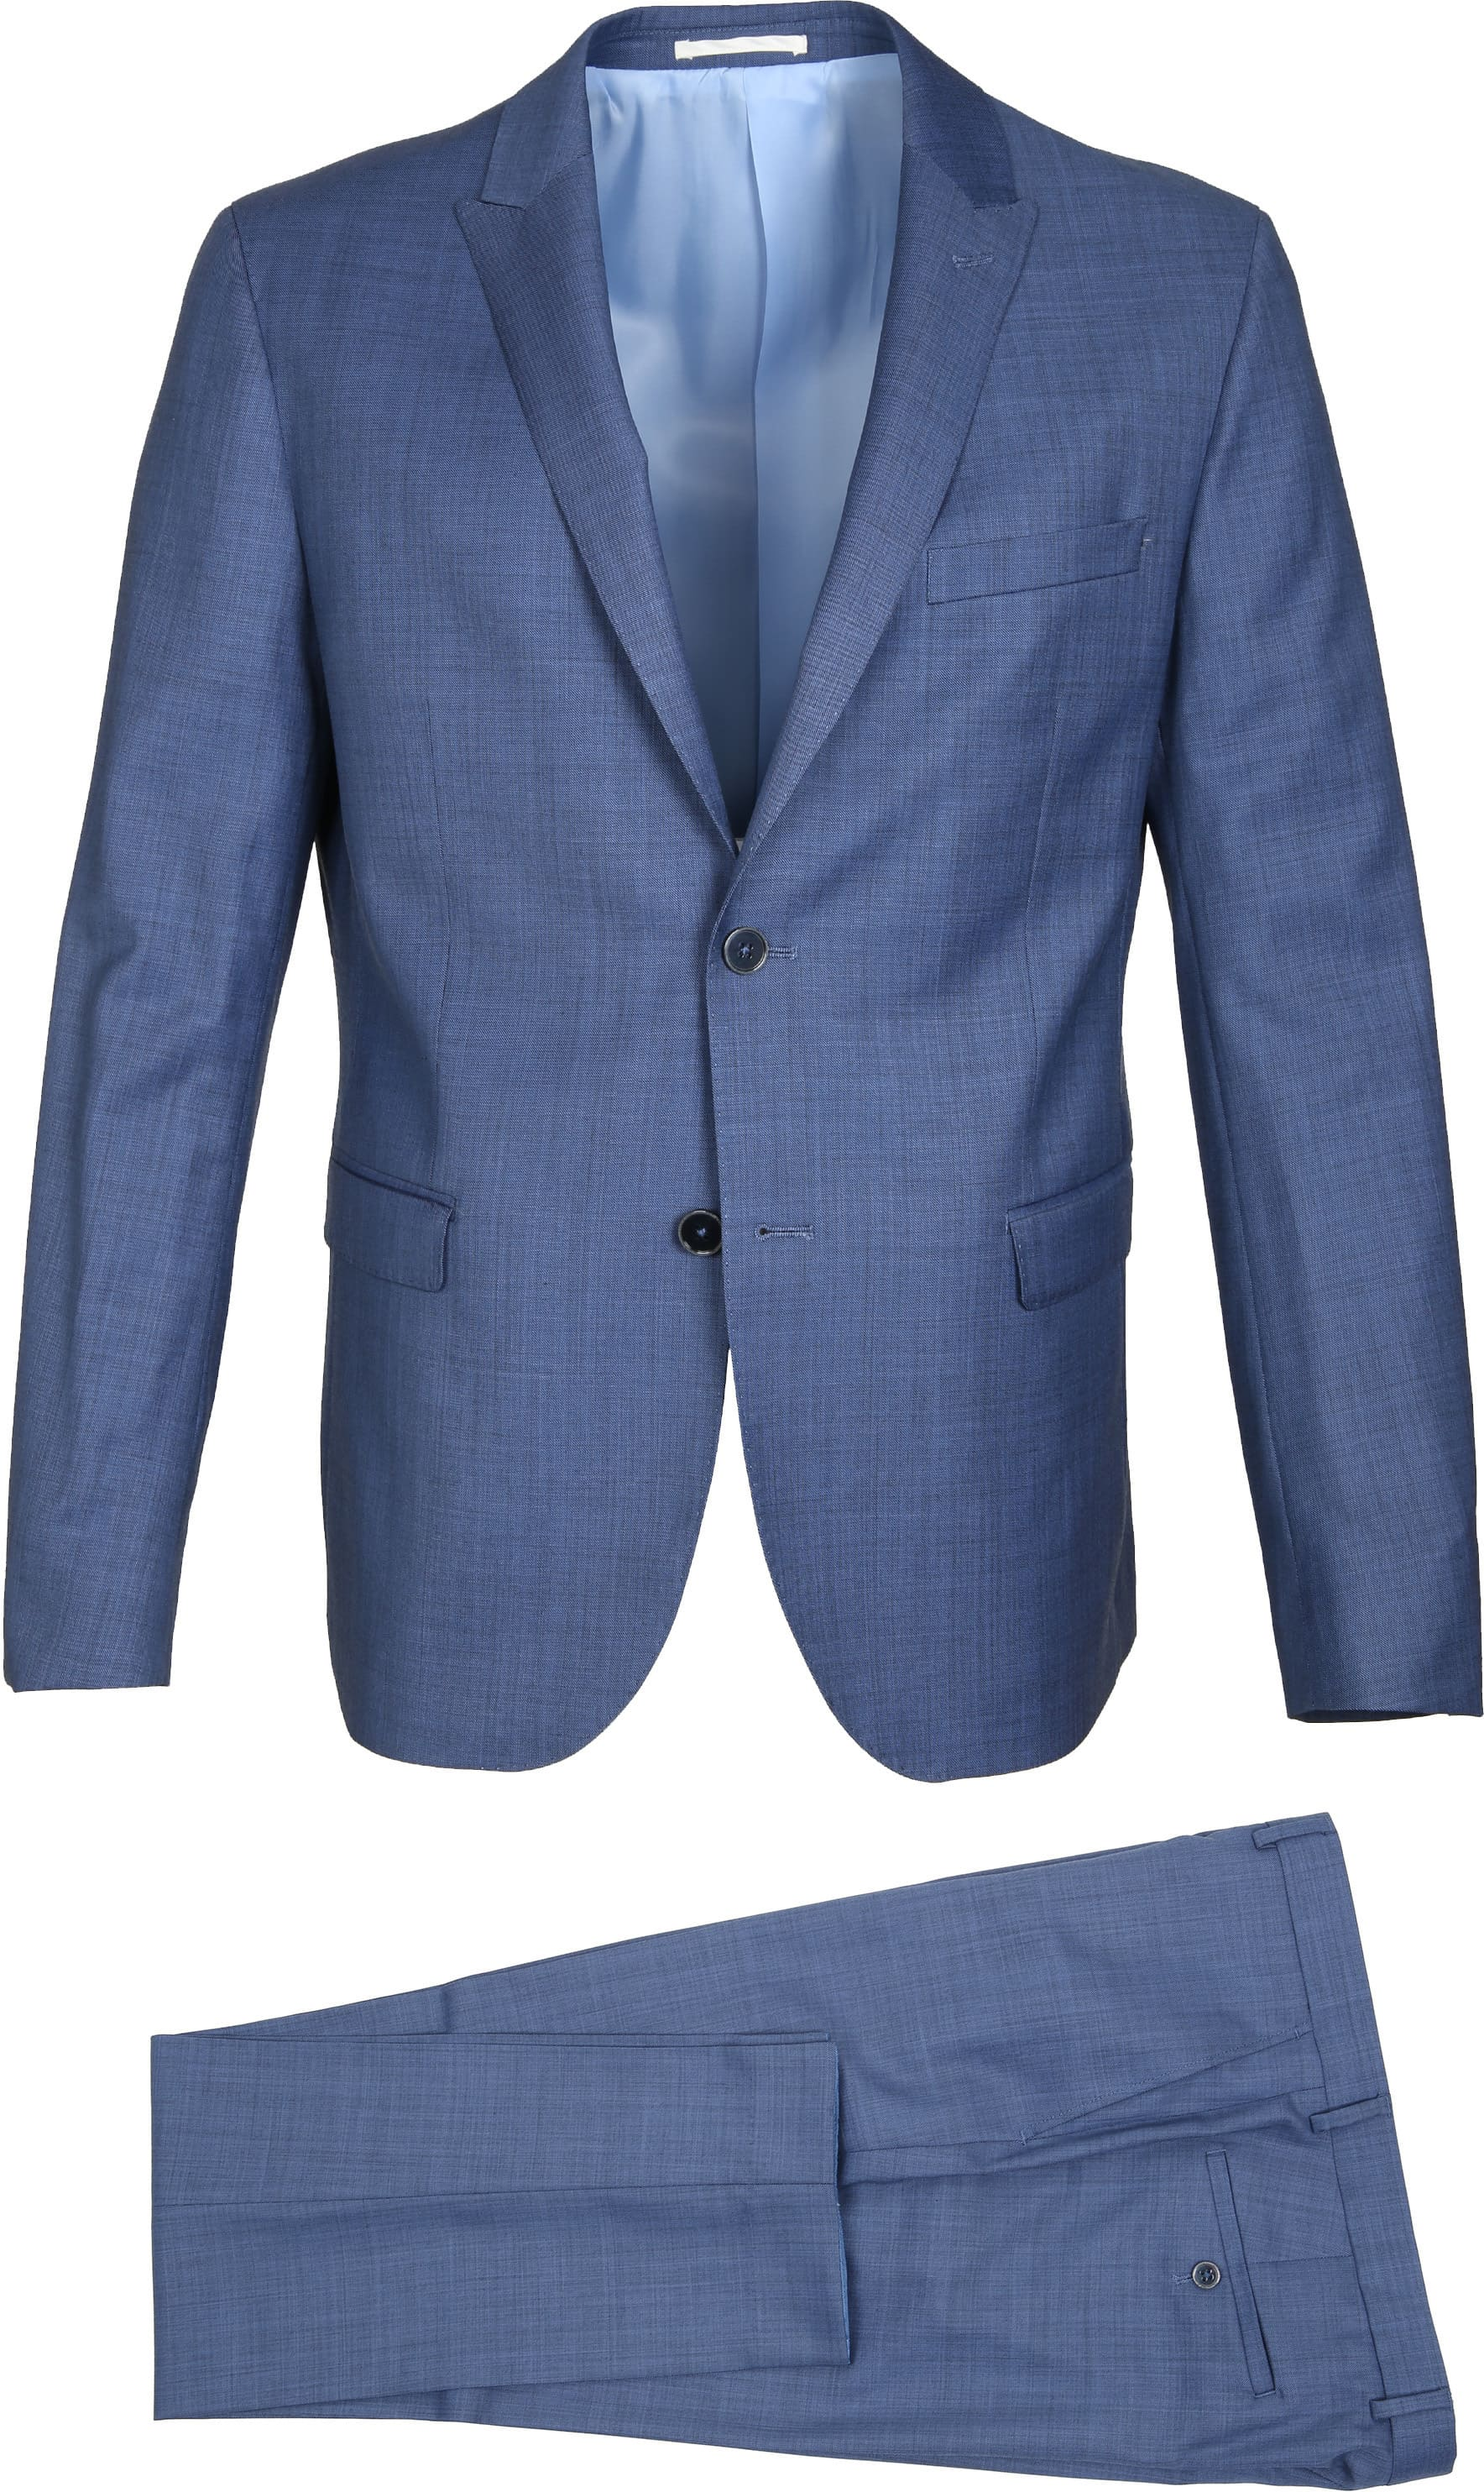 Suitable Suit Strato Indigo foto 1